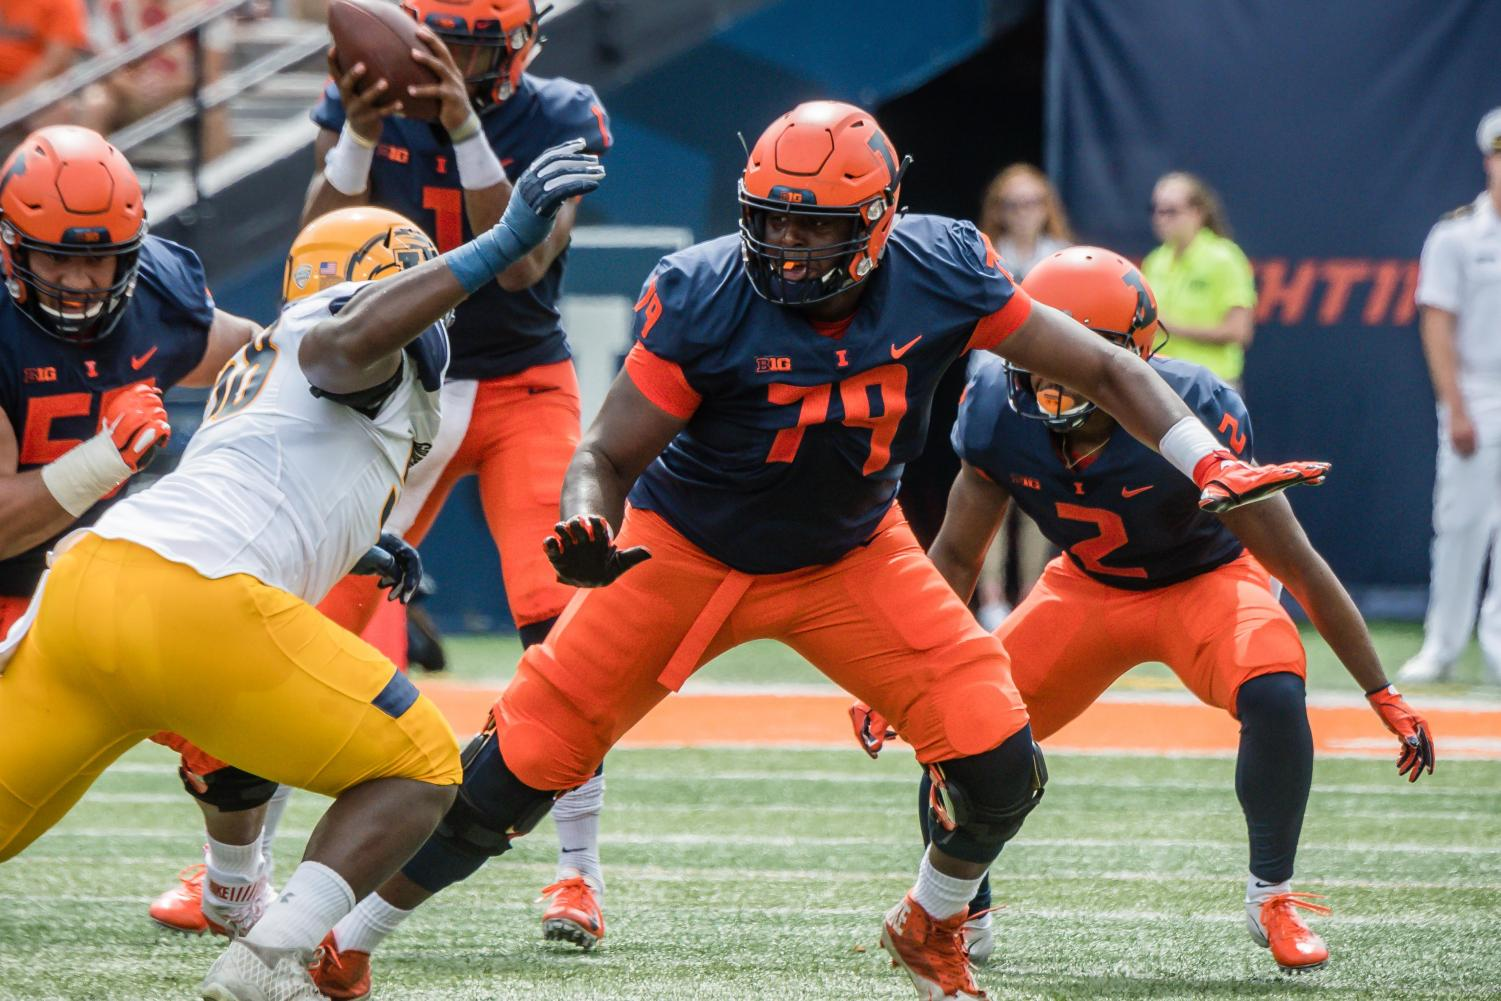 Offensive lineman Vederian Lowe prepares for a block against Kent State last Saturday. Despite a  rst-half struggle, with several missed blocks and a lack of communication, Lowe and his fellow linemen made halftime adjustments to help lead Illinois to a 31-24 victory.